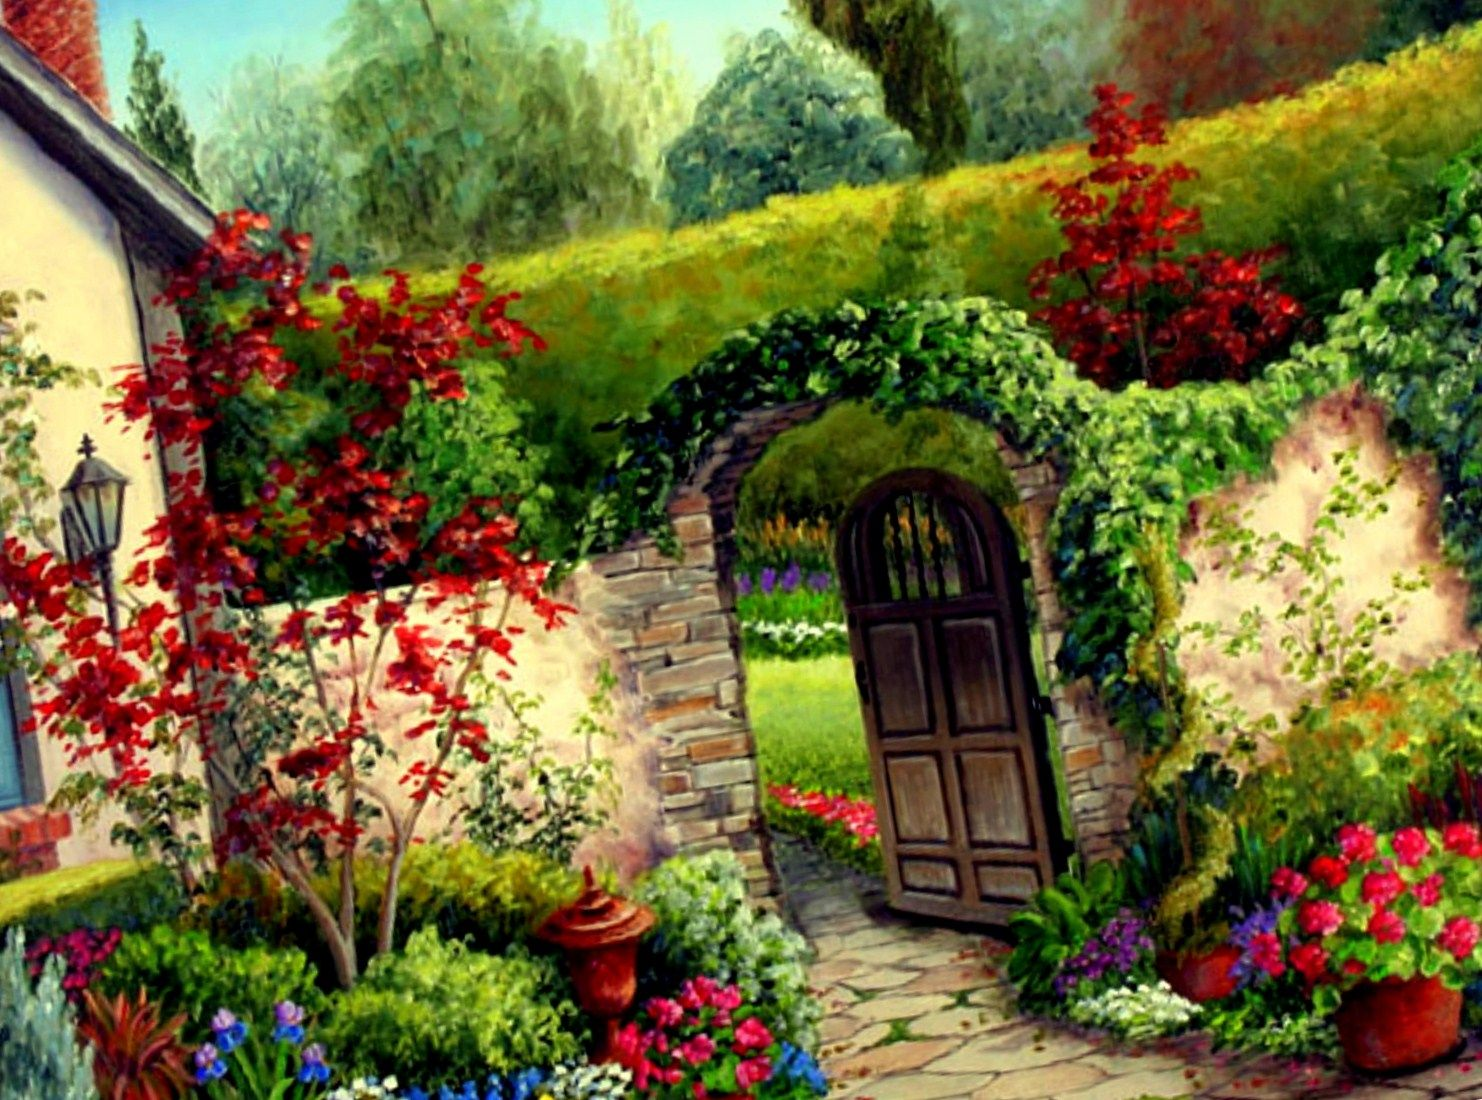 flower garden landscape click image for more detailsthis is an amazon - Garden Flowers